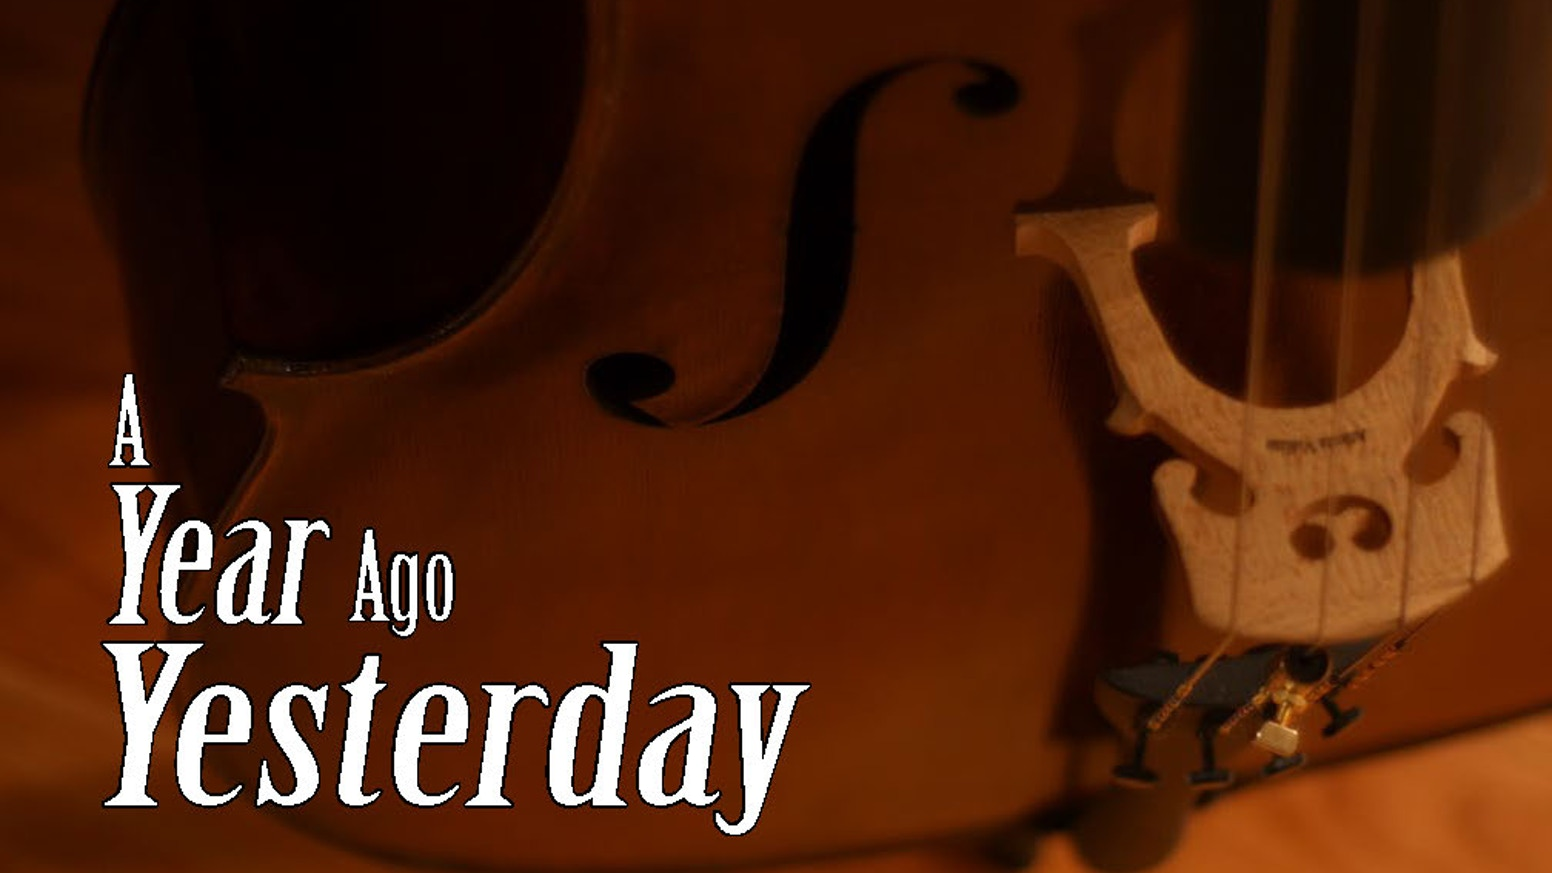 A year ago, he was left alone. A young German musician reunites with his estranged uncle on foreign soil to face his fear.